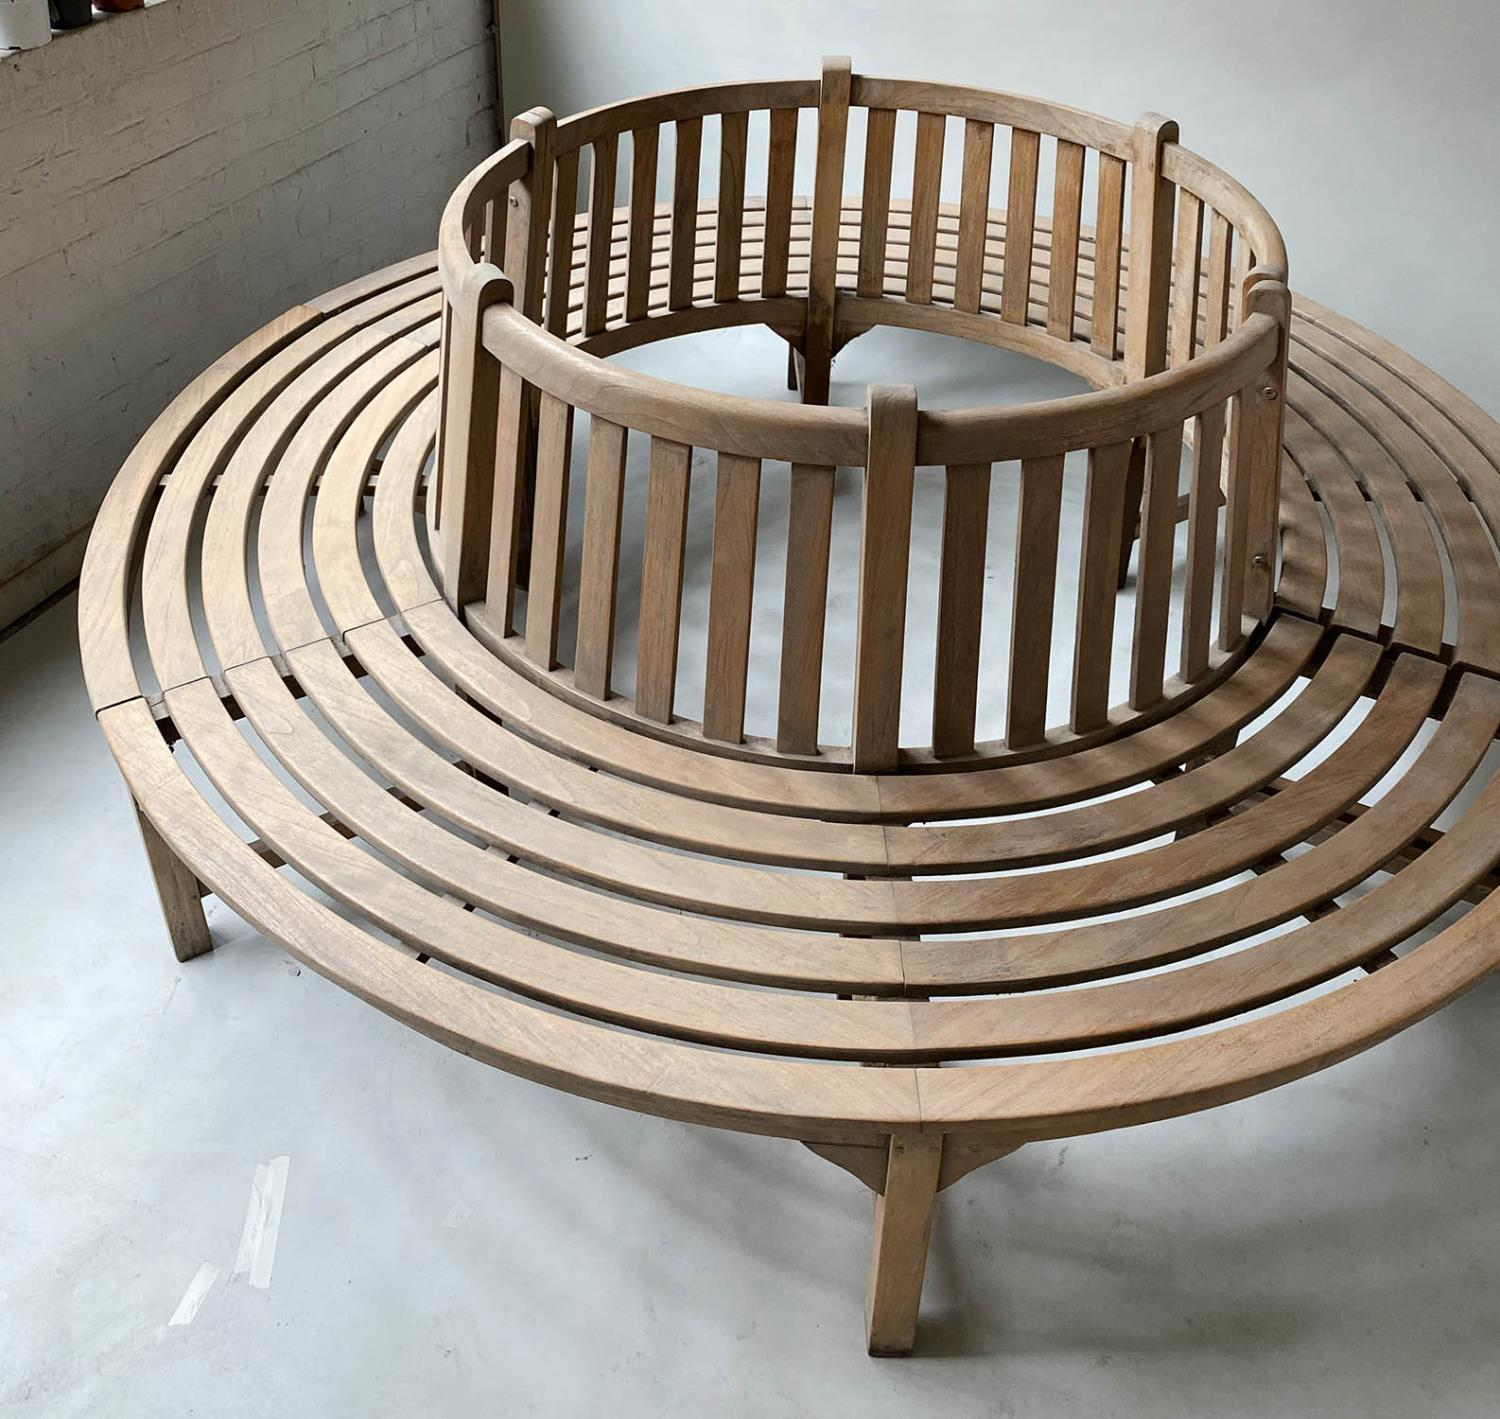 TREE BENCH, weathered teak and slatted in two sections of concentric slats and raised back rest, - Image 2 of 7